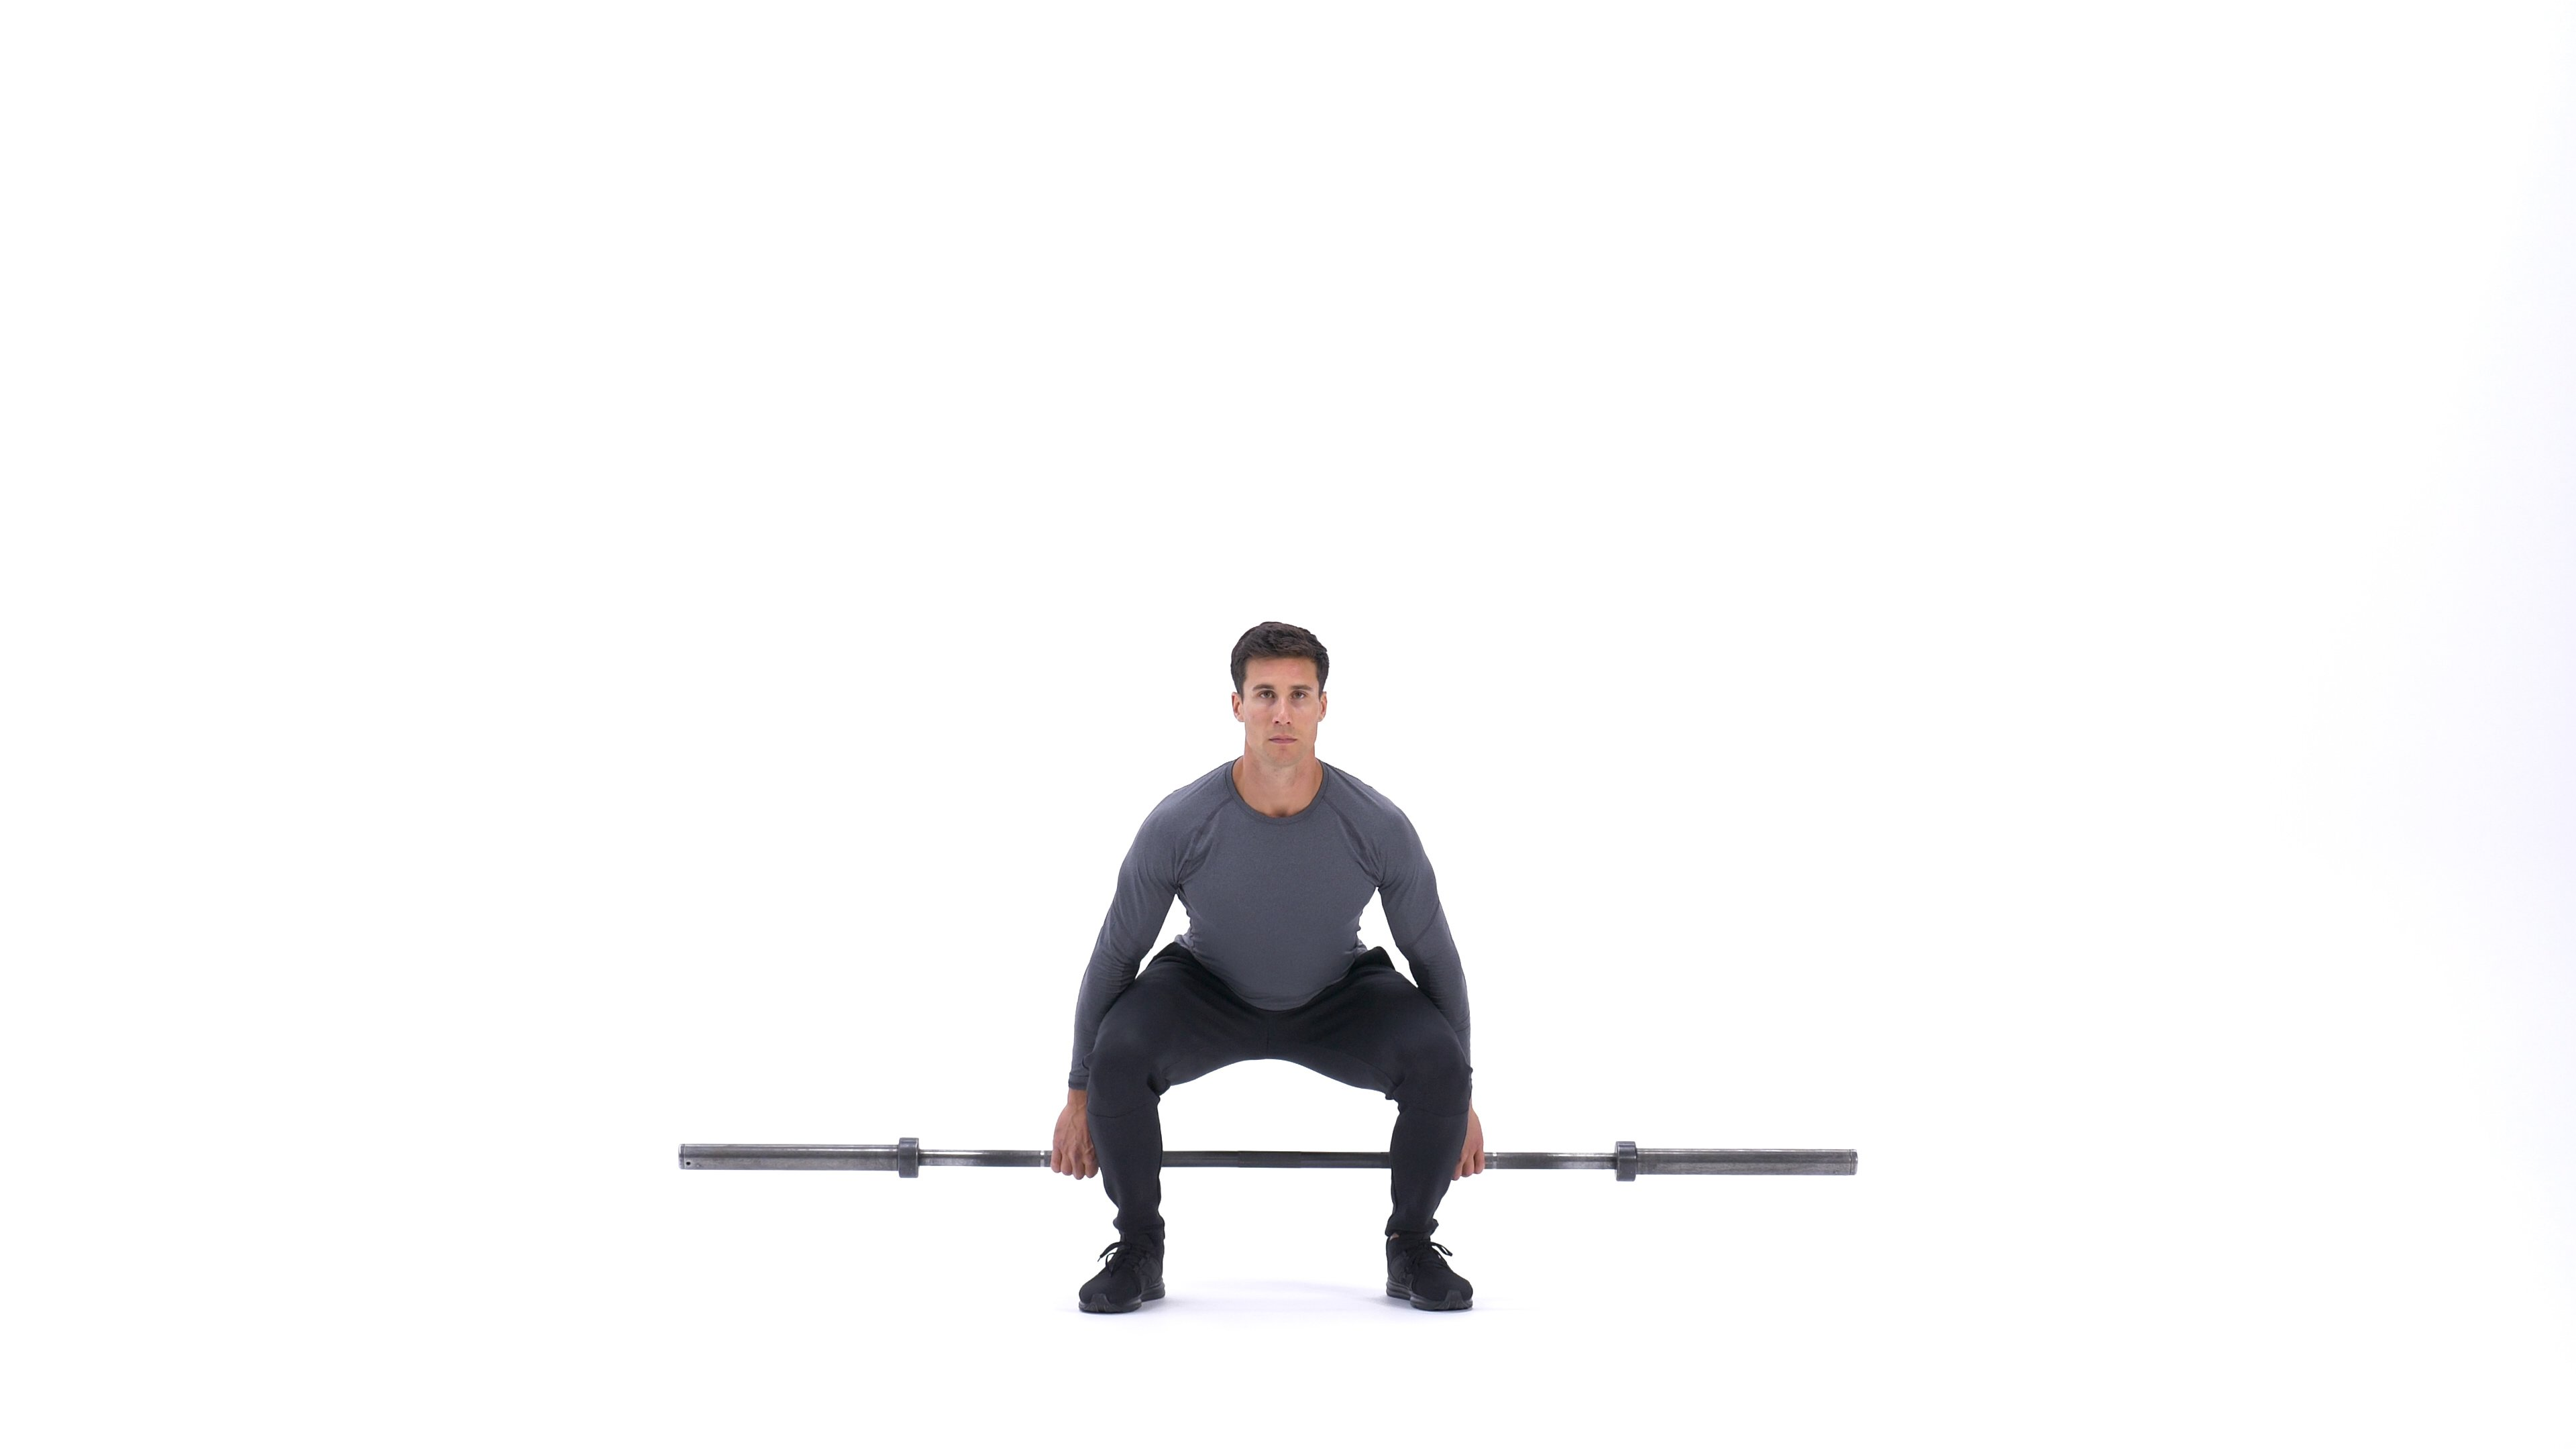 Barbell hack squat image